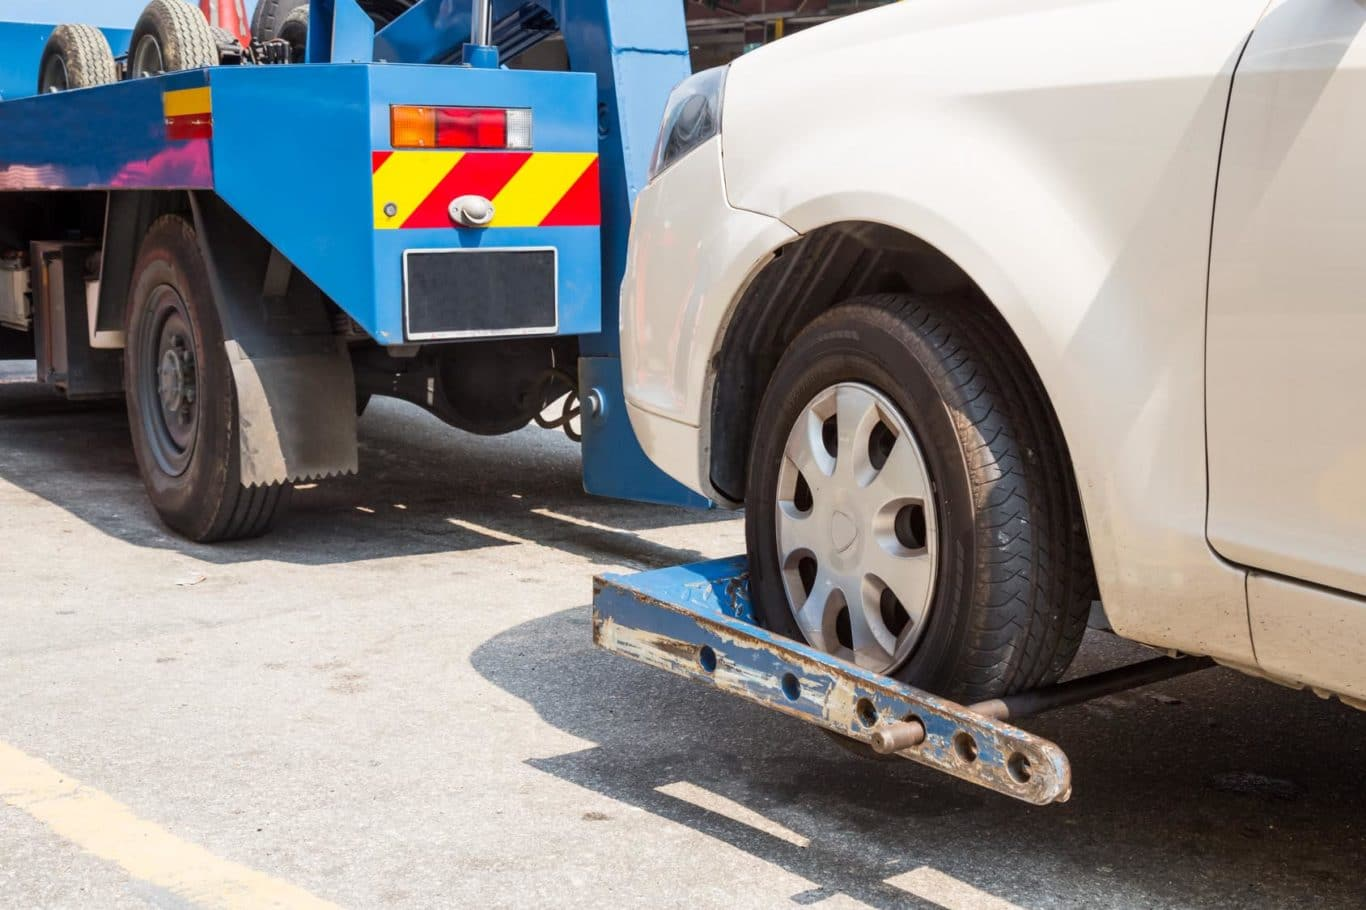 Drumree expert Car Towing services